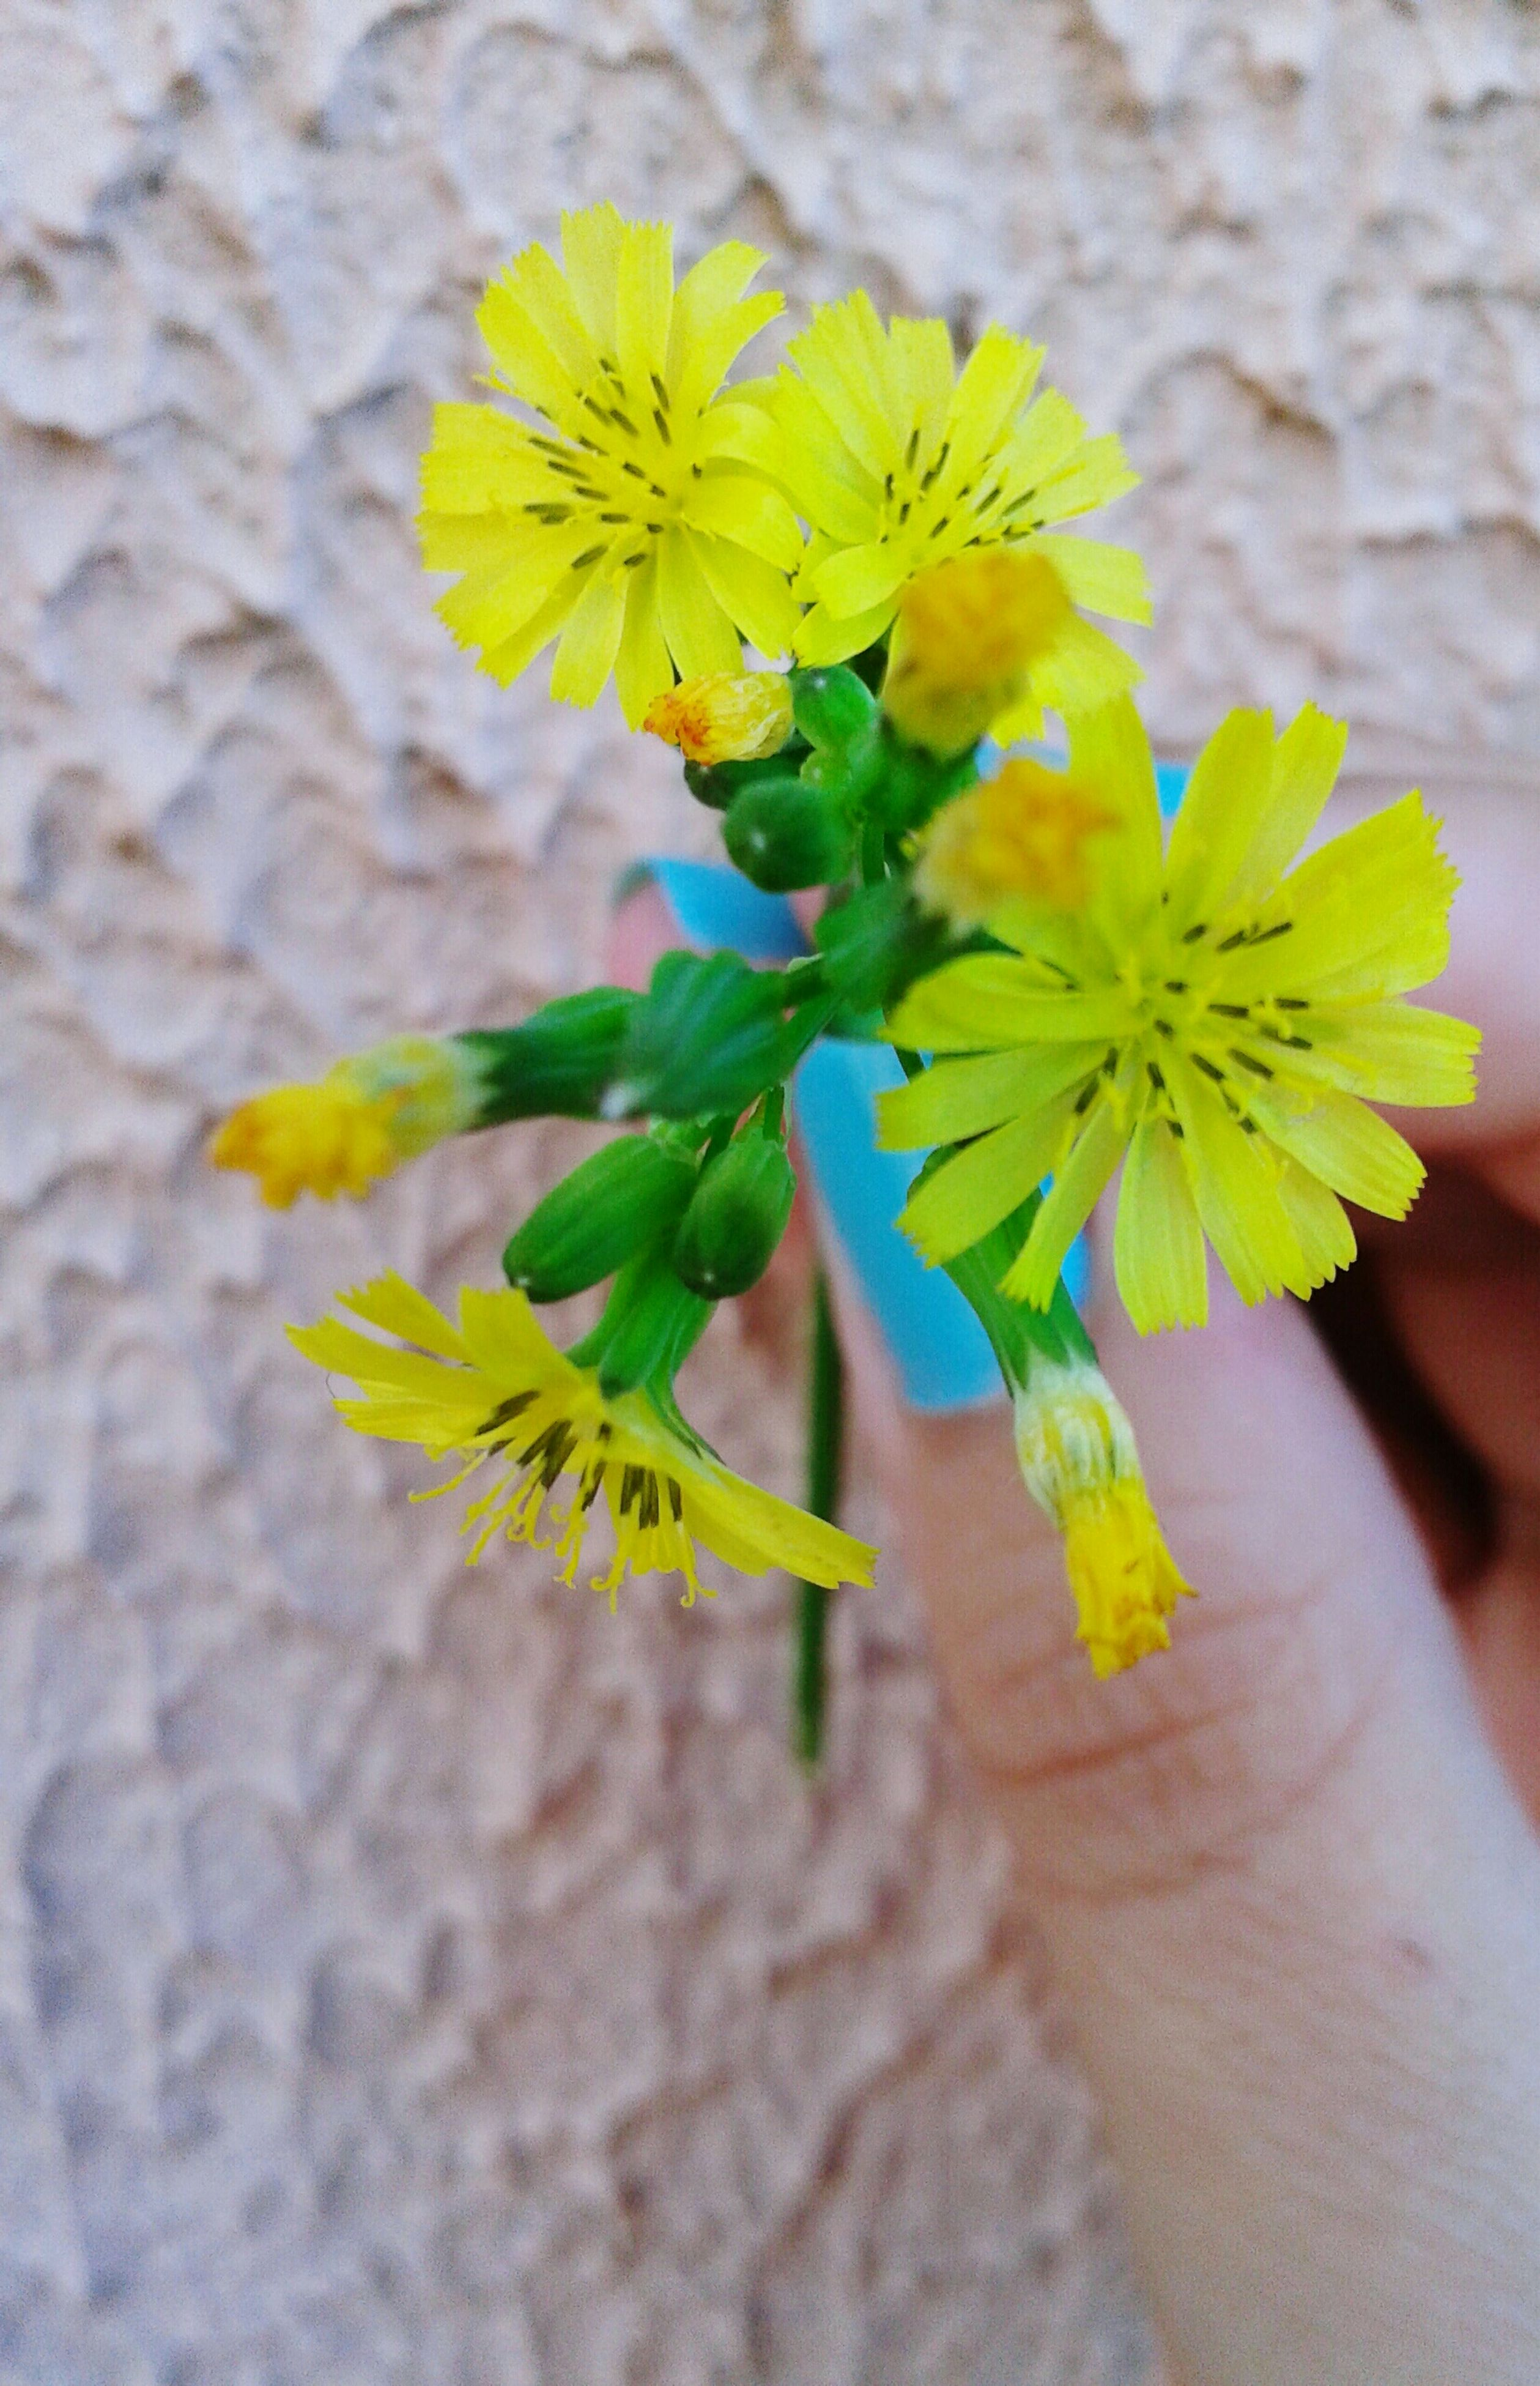 flower, yellow, petal, freshness, fragility, flower head, close-up, growth, focus on foreground, beauty in nature, nature, pollen, one person, plant, blooming, stem, holding, day, botany, single flower